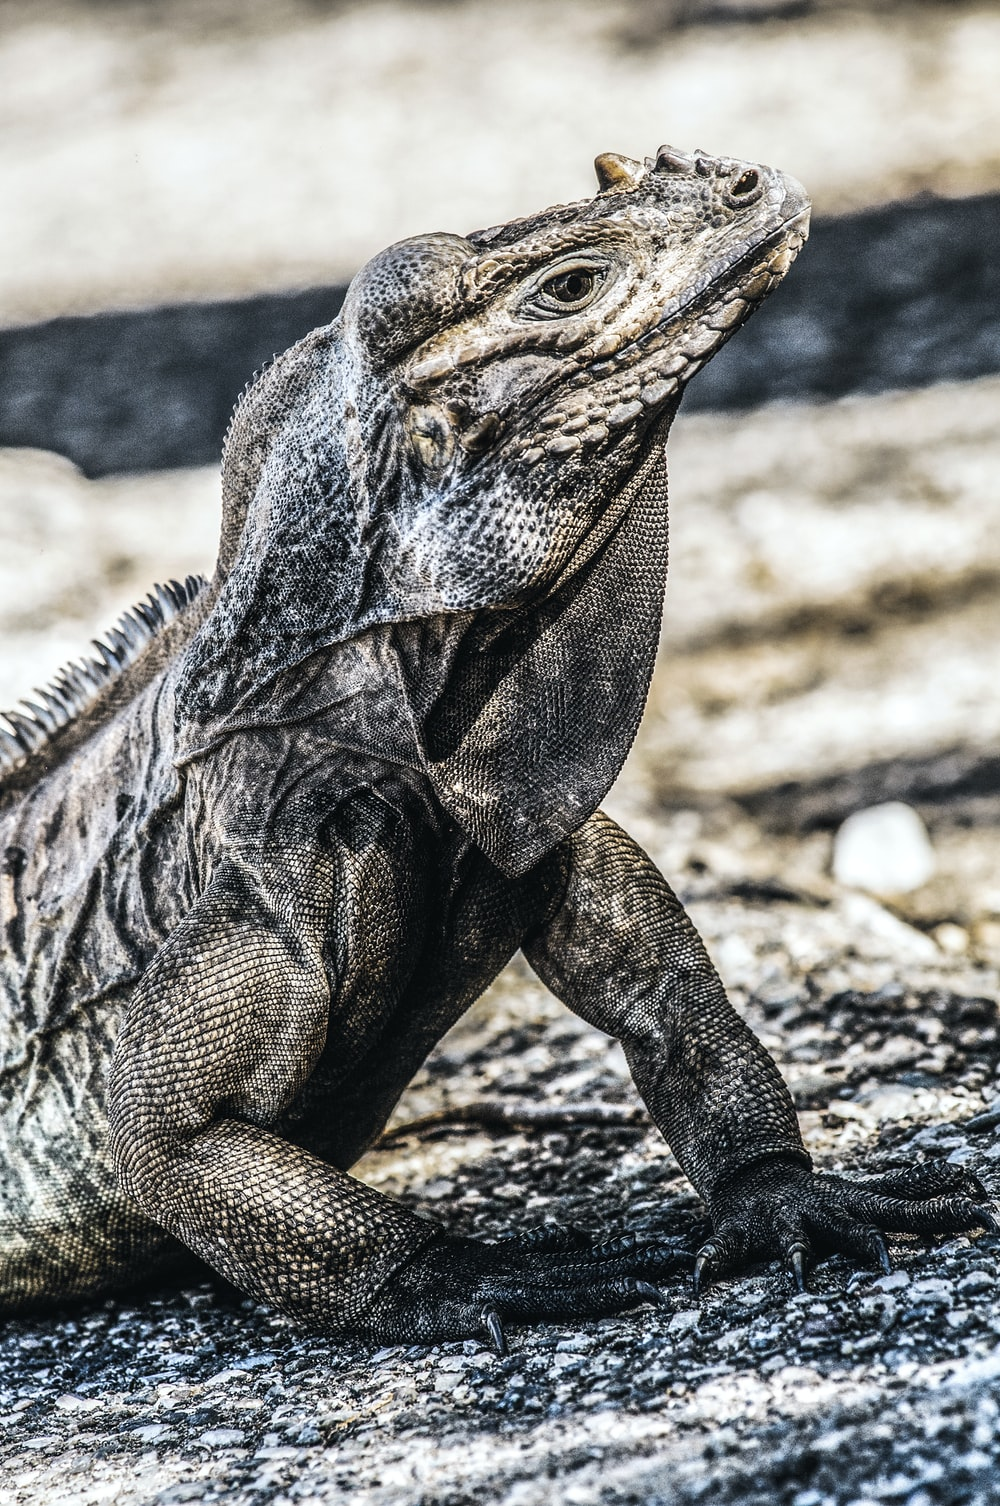 brown and black bearded dragon on brown soil during daytime